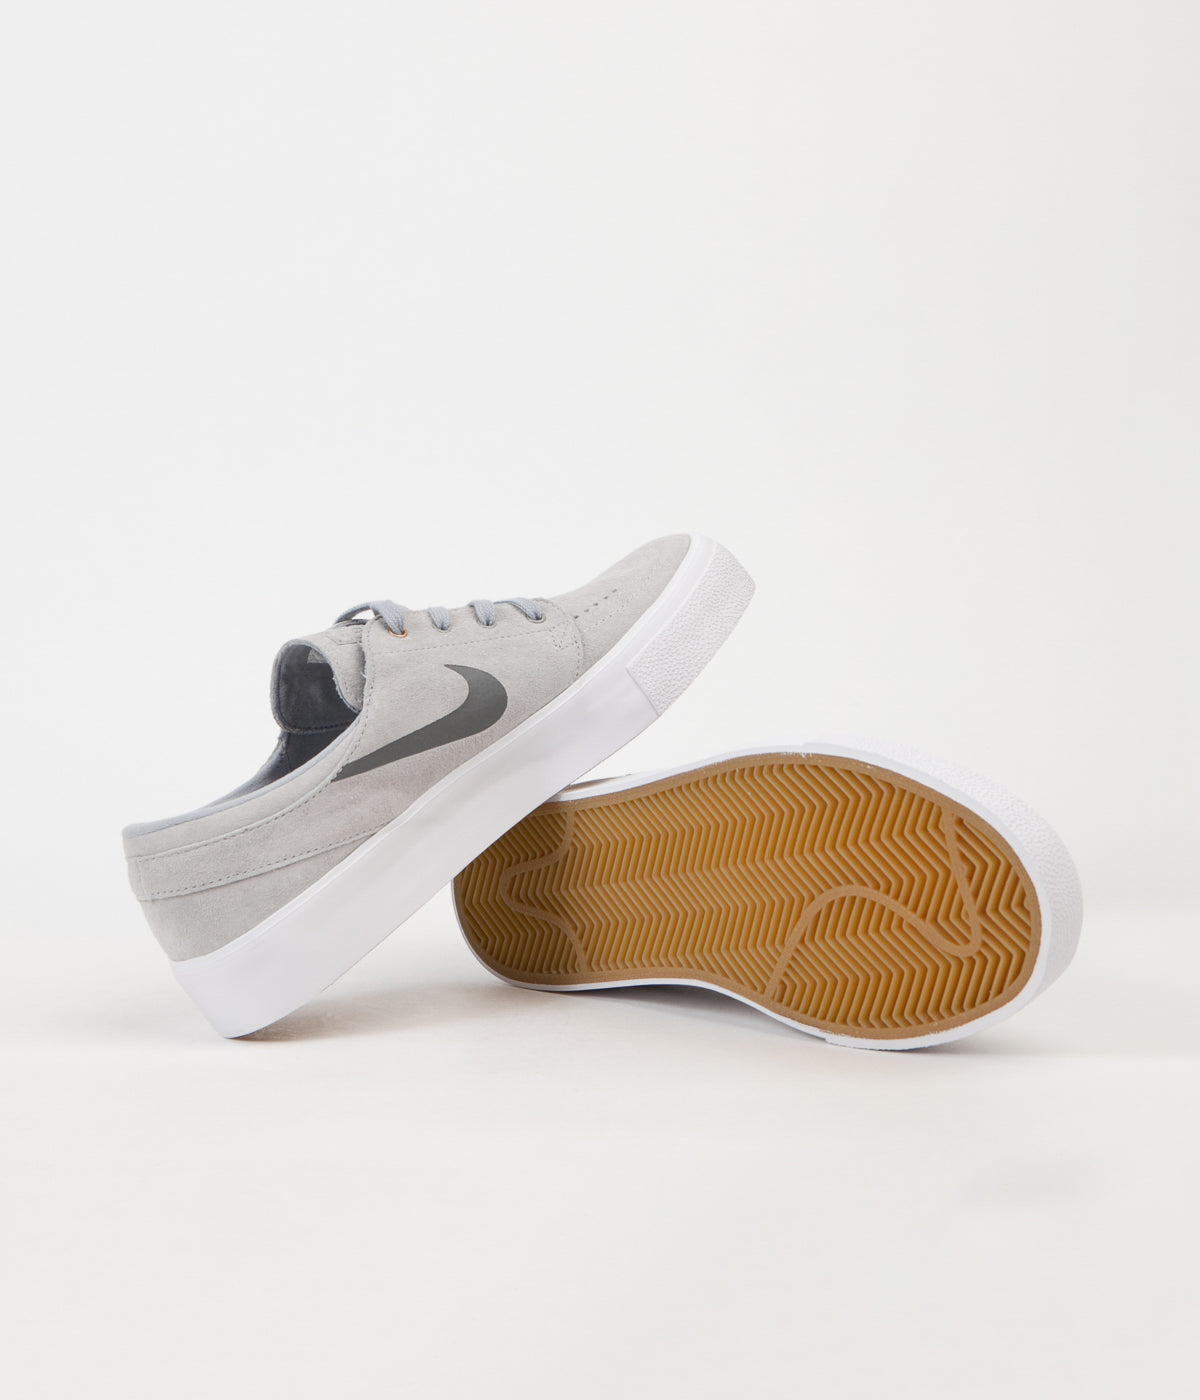 new arrivals 73e71 f5df2 ... Nike SB Stefan Janoski HT Shoes - Wolf Grey   Dark Grey - Metallic Gold  ...